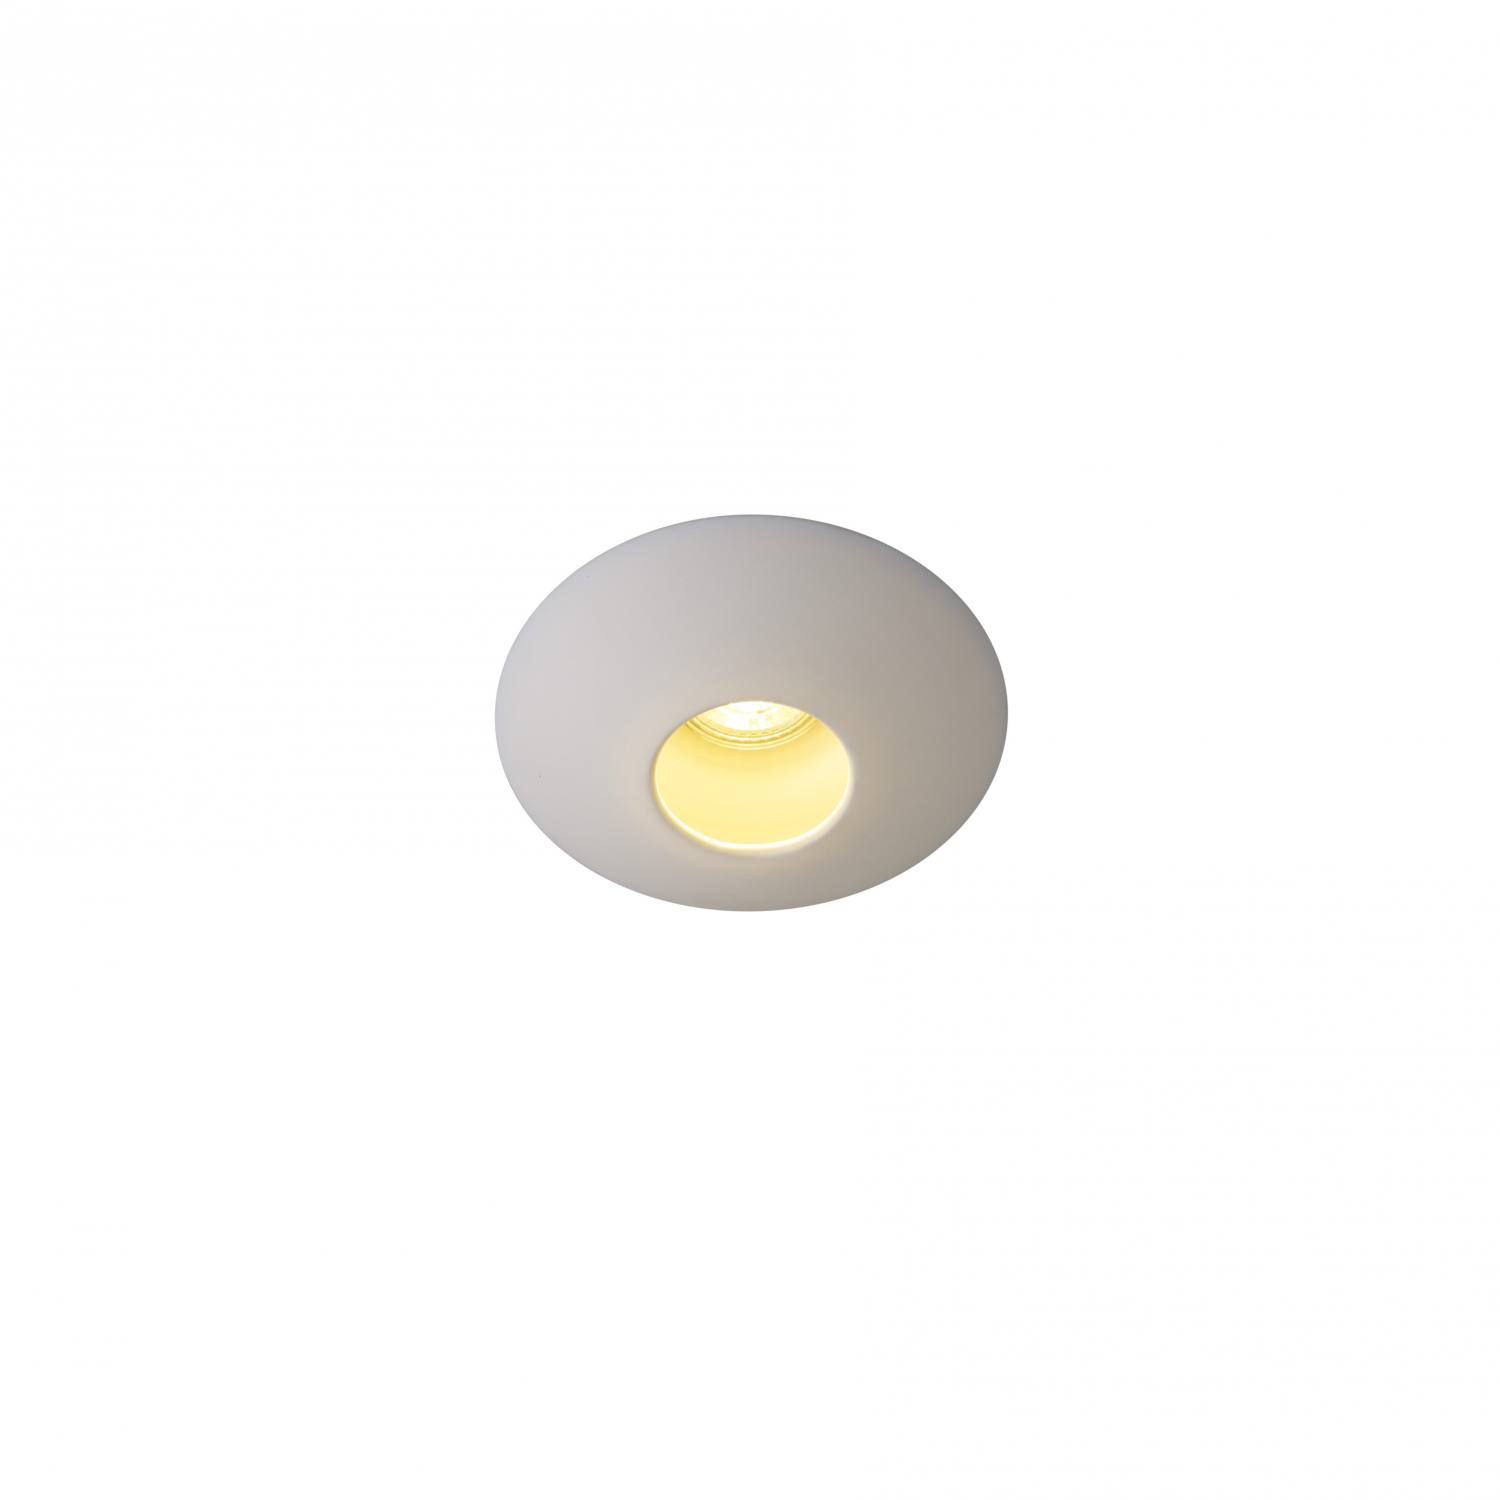 Sopra Downlight Plain Ceiling Lamp